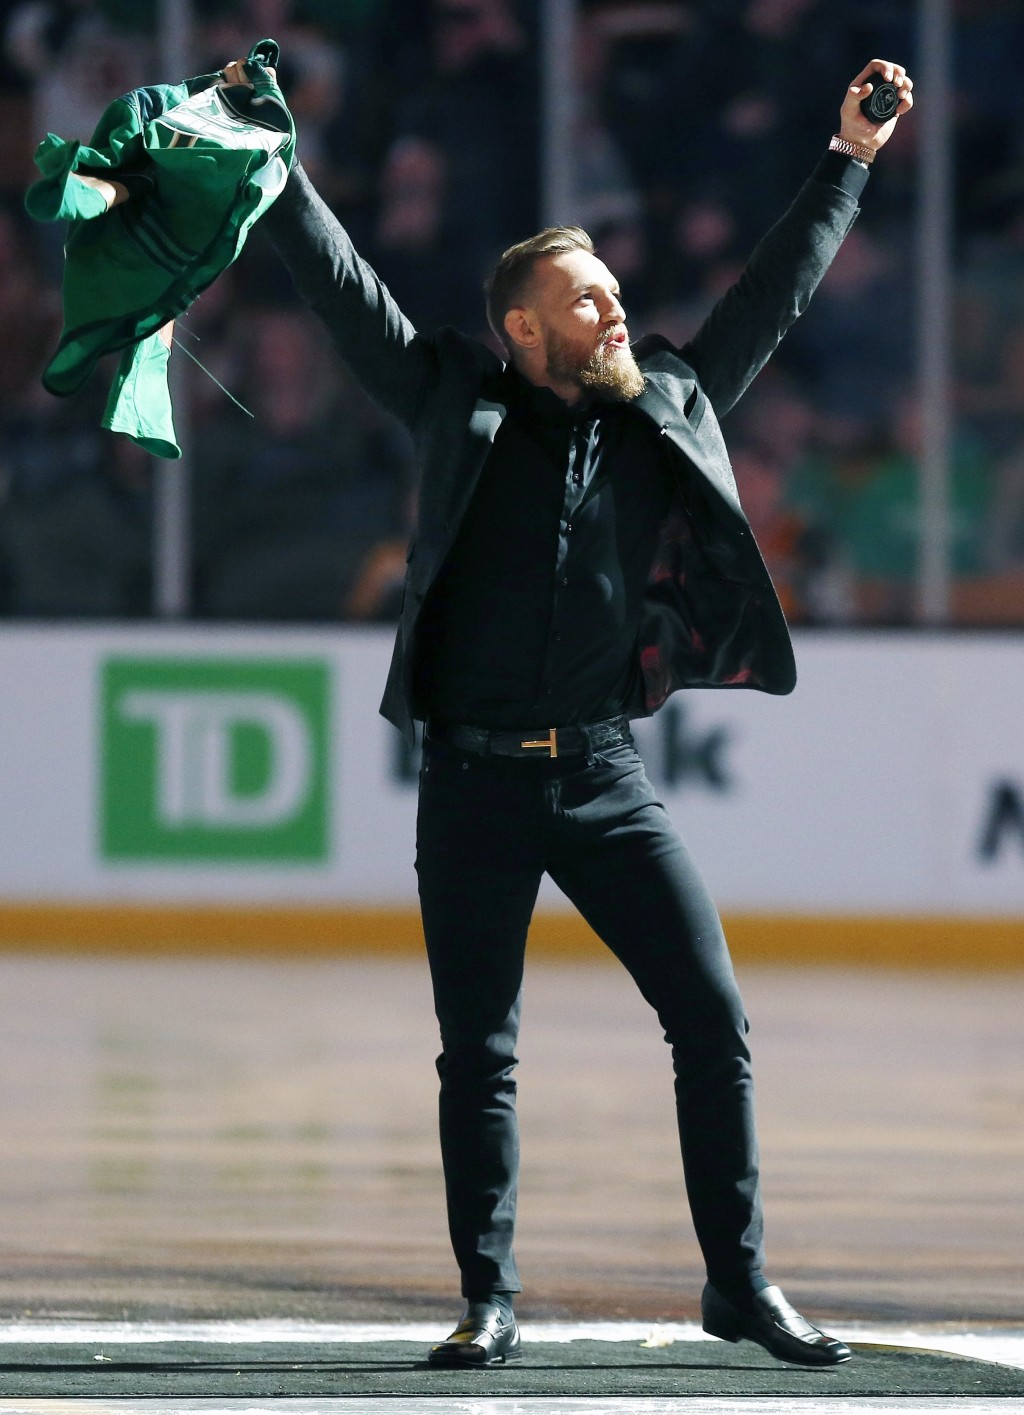 Mixed martial arts fighter and boxer Conor McGregor salutes the crowd before making the ceremonial puck drop at an NHL hockey game between the Boston